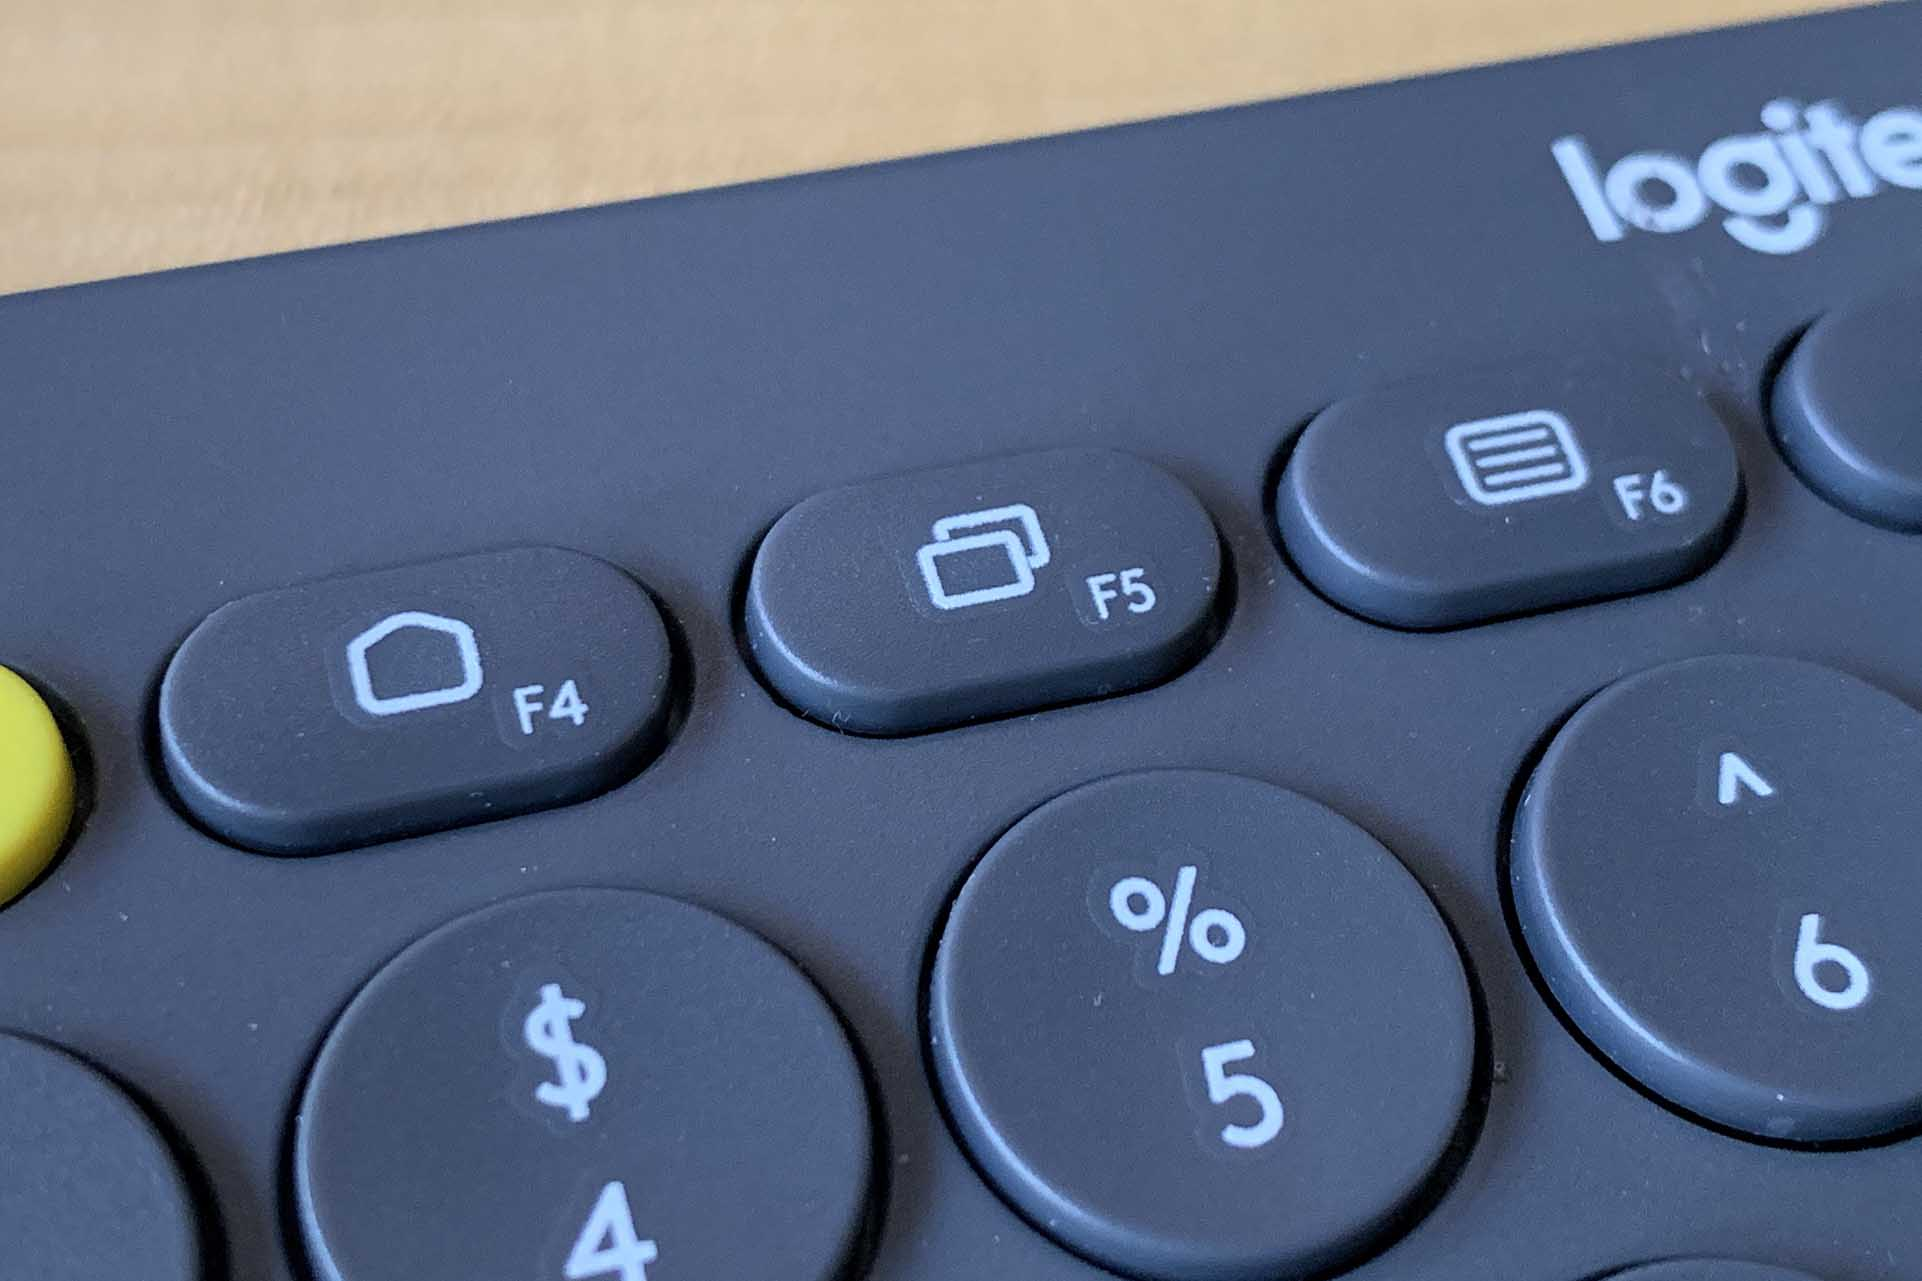 Function keys on a Logitech keyboard